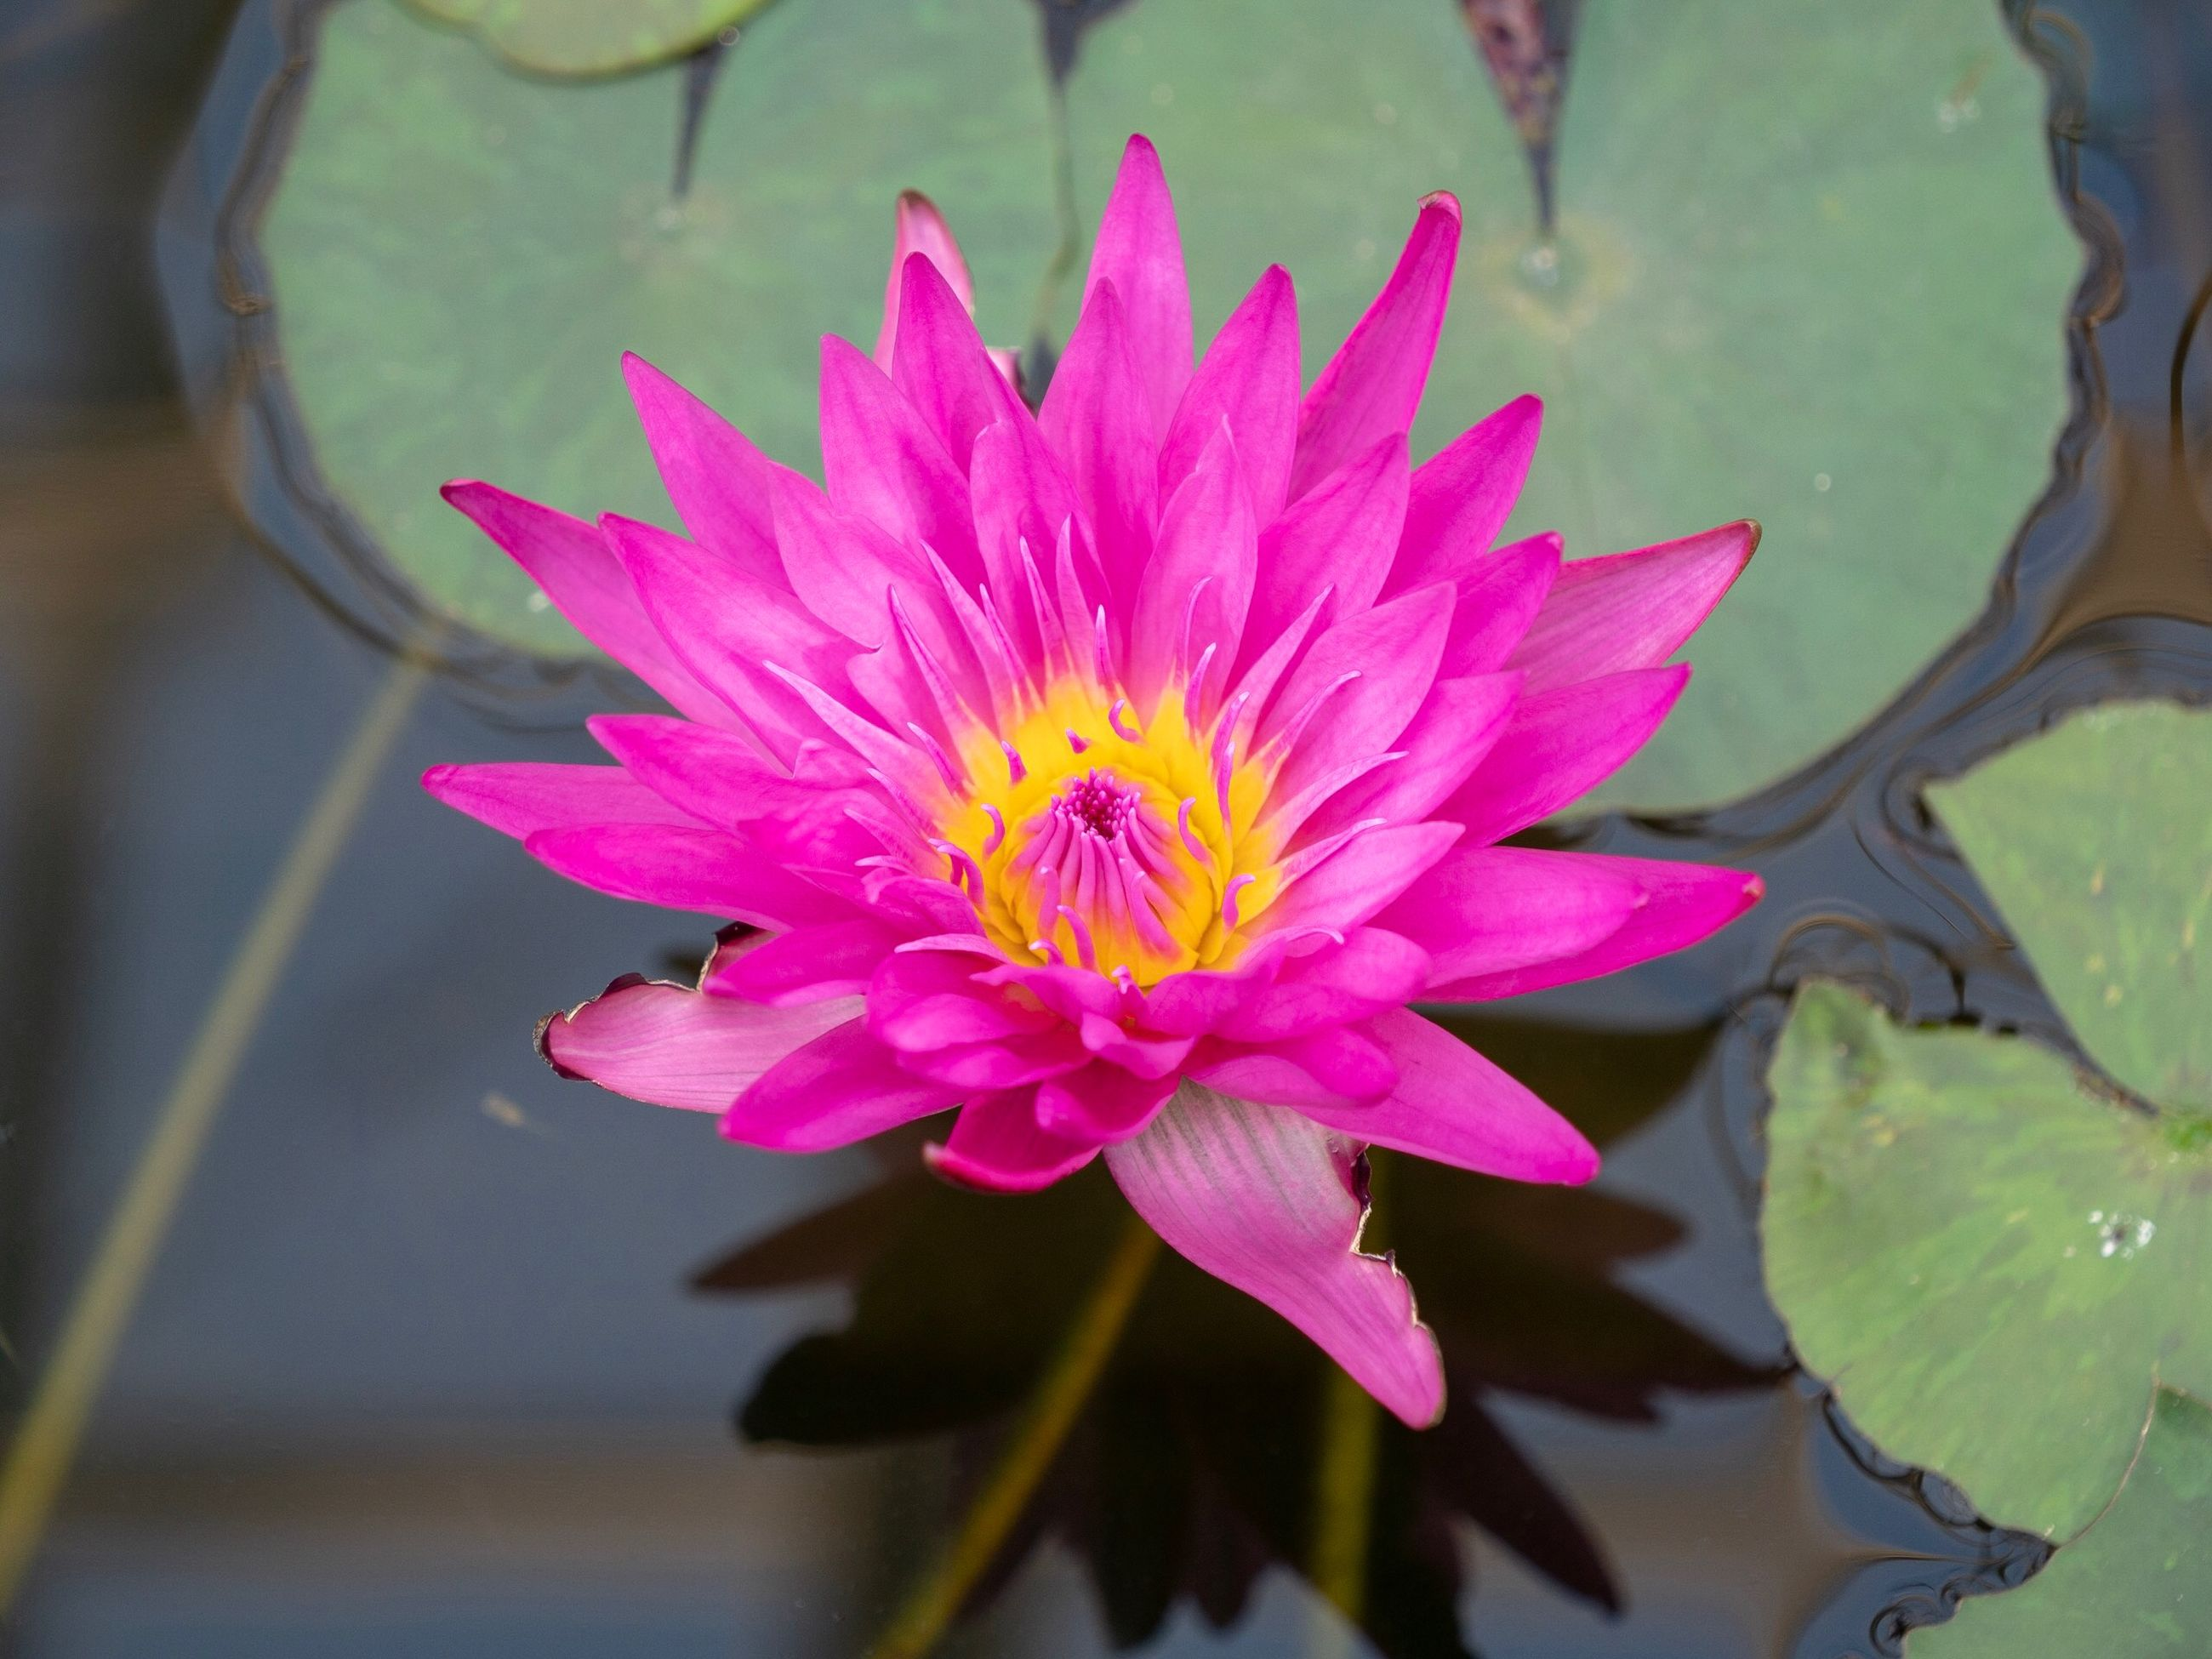 flowering plant, flower, petal, beauty in nature, plant, freshness, fragility, pink color, vulnerability, inflorescence, flower head, water lily, growth, leaf, water, close-up, pond, plant part, no people, floating on water, lotus water lily, pollen